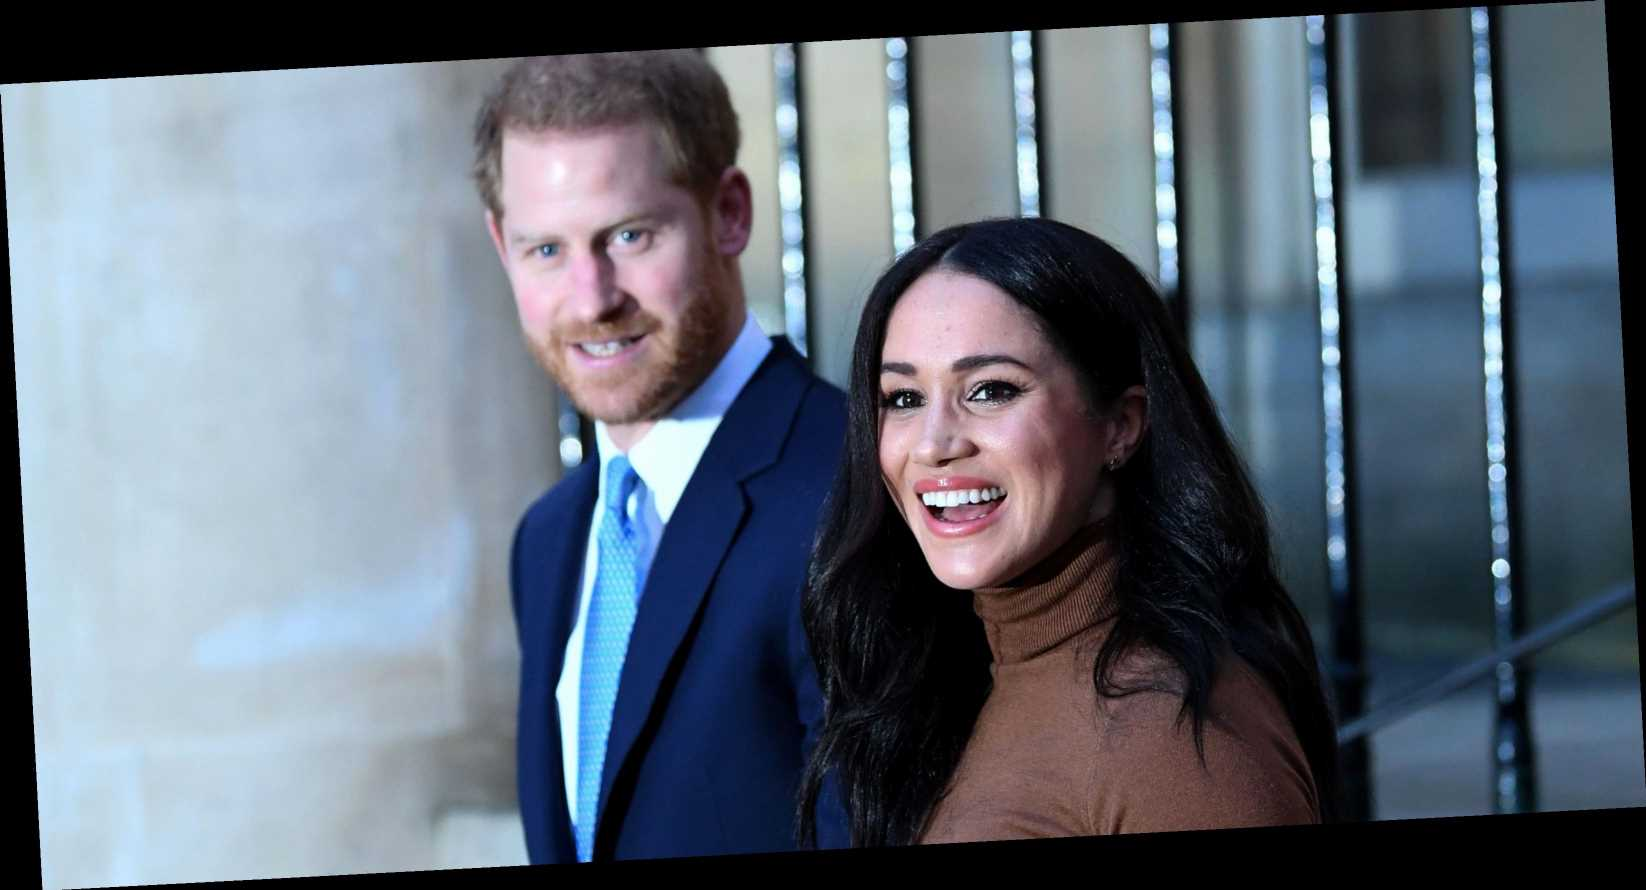 Meghan Markle and Prince Harry Will Visit the Queen at Balmoral This Summer